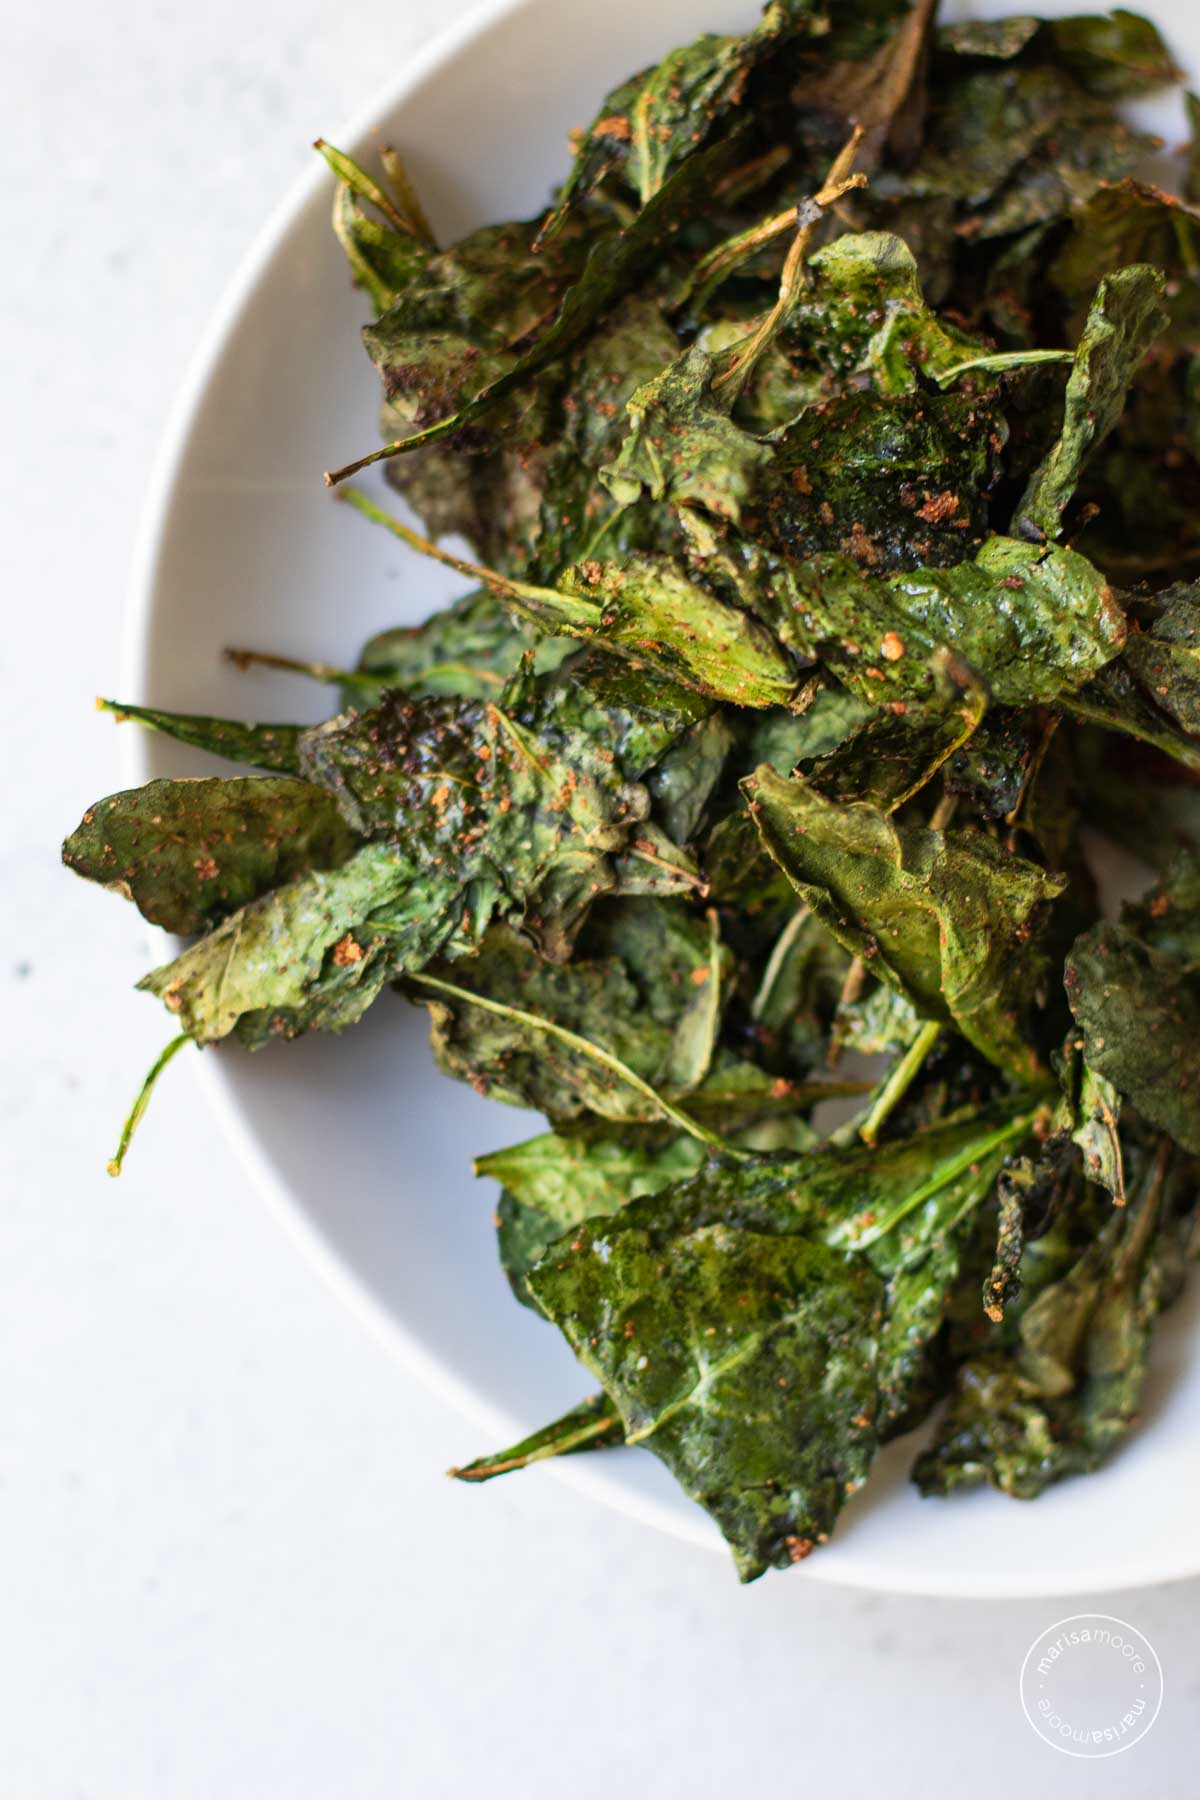 Overhead shot of seasoned kale chips in a white bowl.